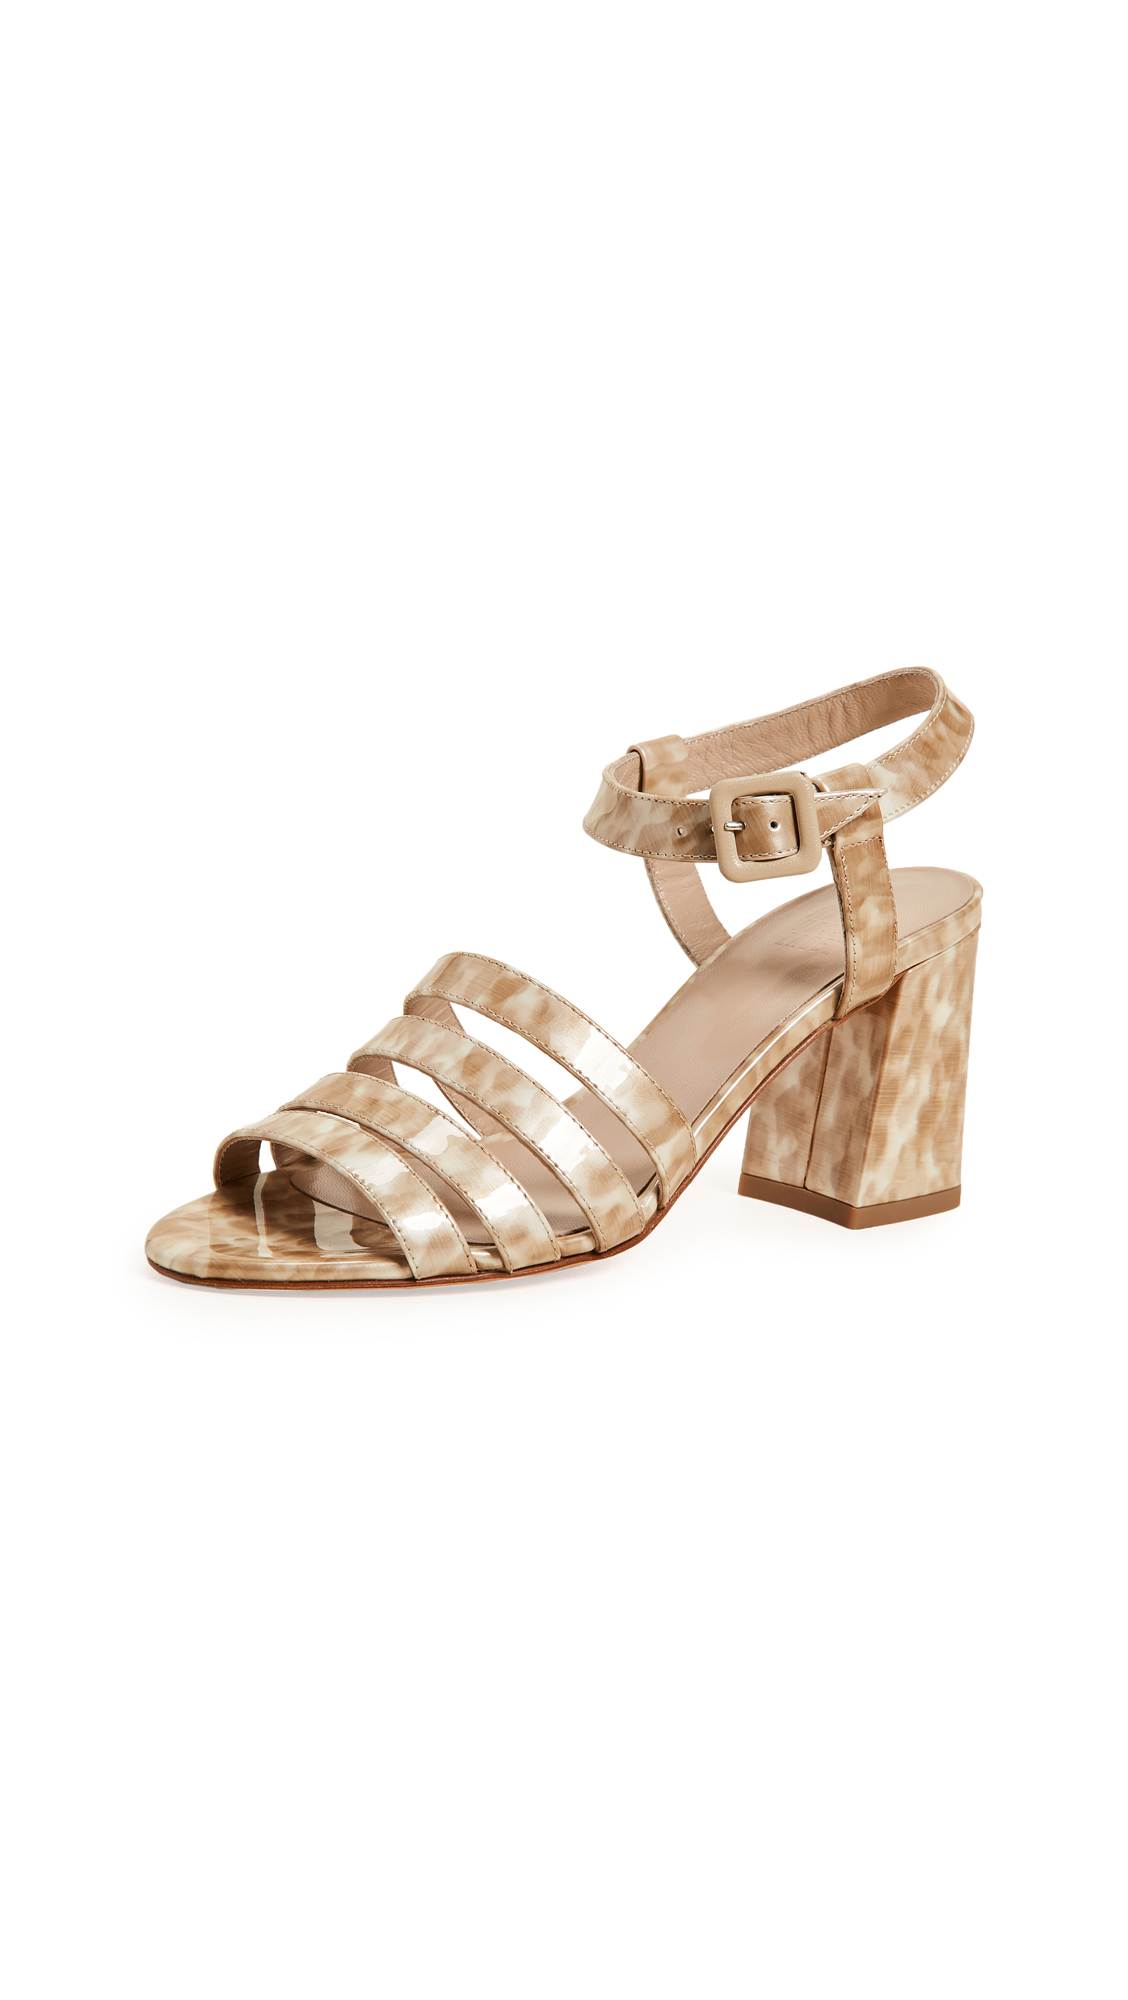 Maryam Nassir Zadeh Palma High Sandals - Blonde Tortoise